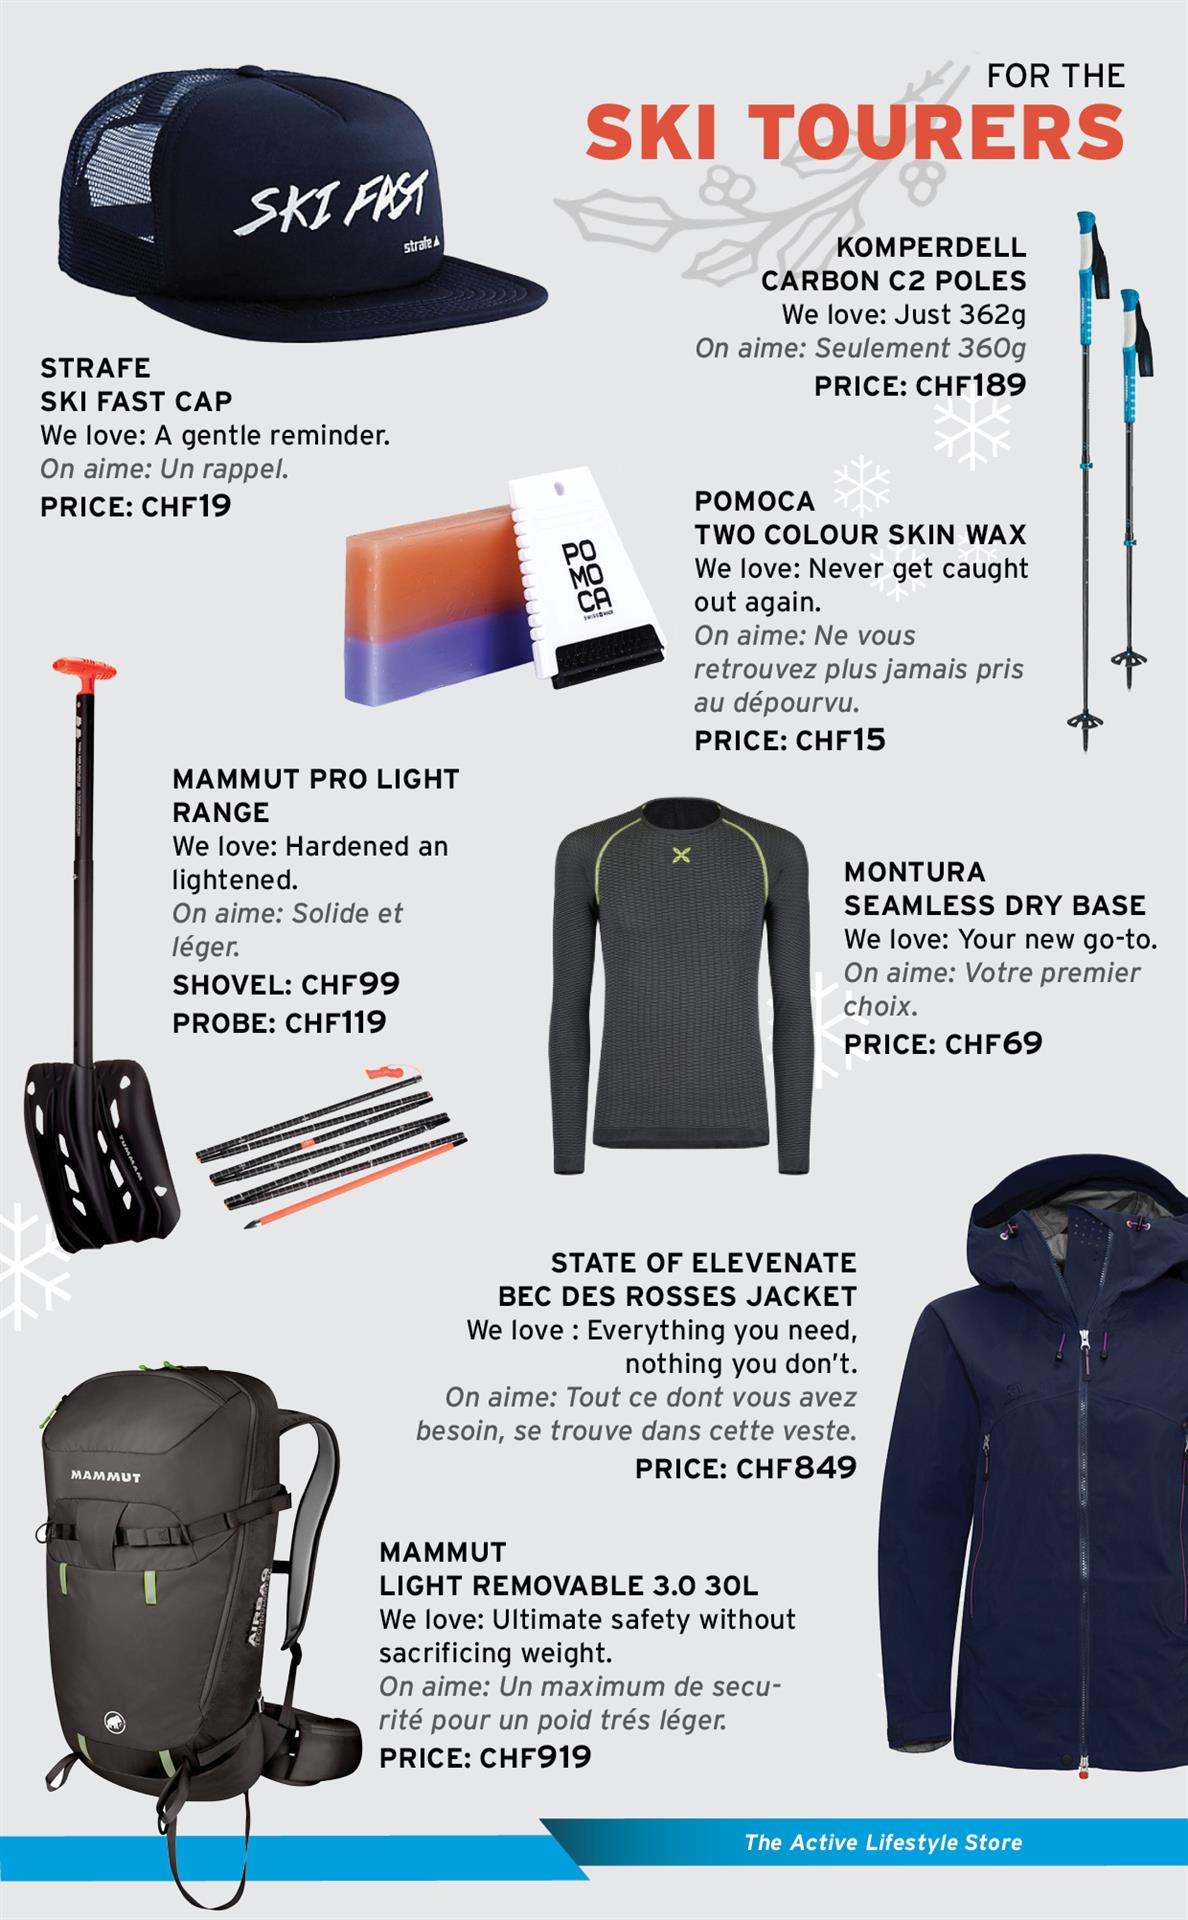 Gifts for the ski tourers